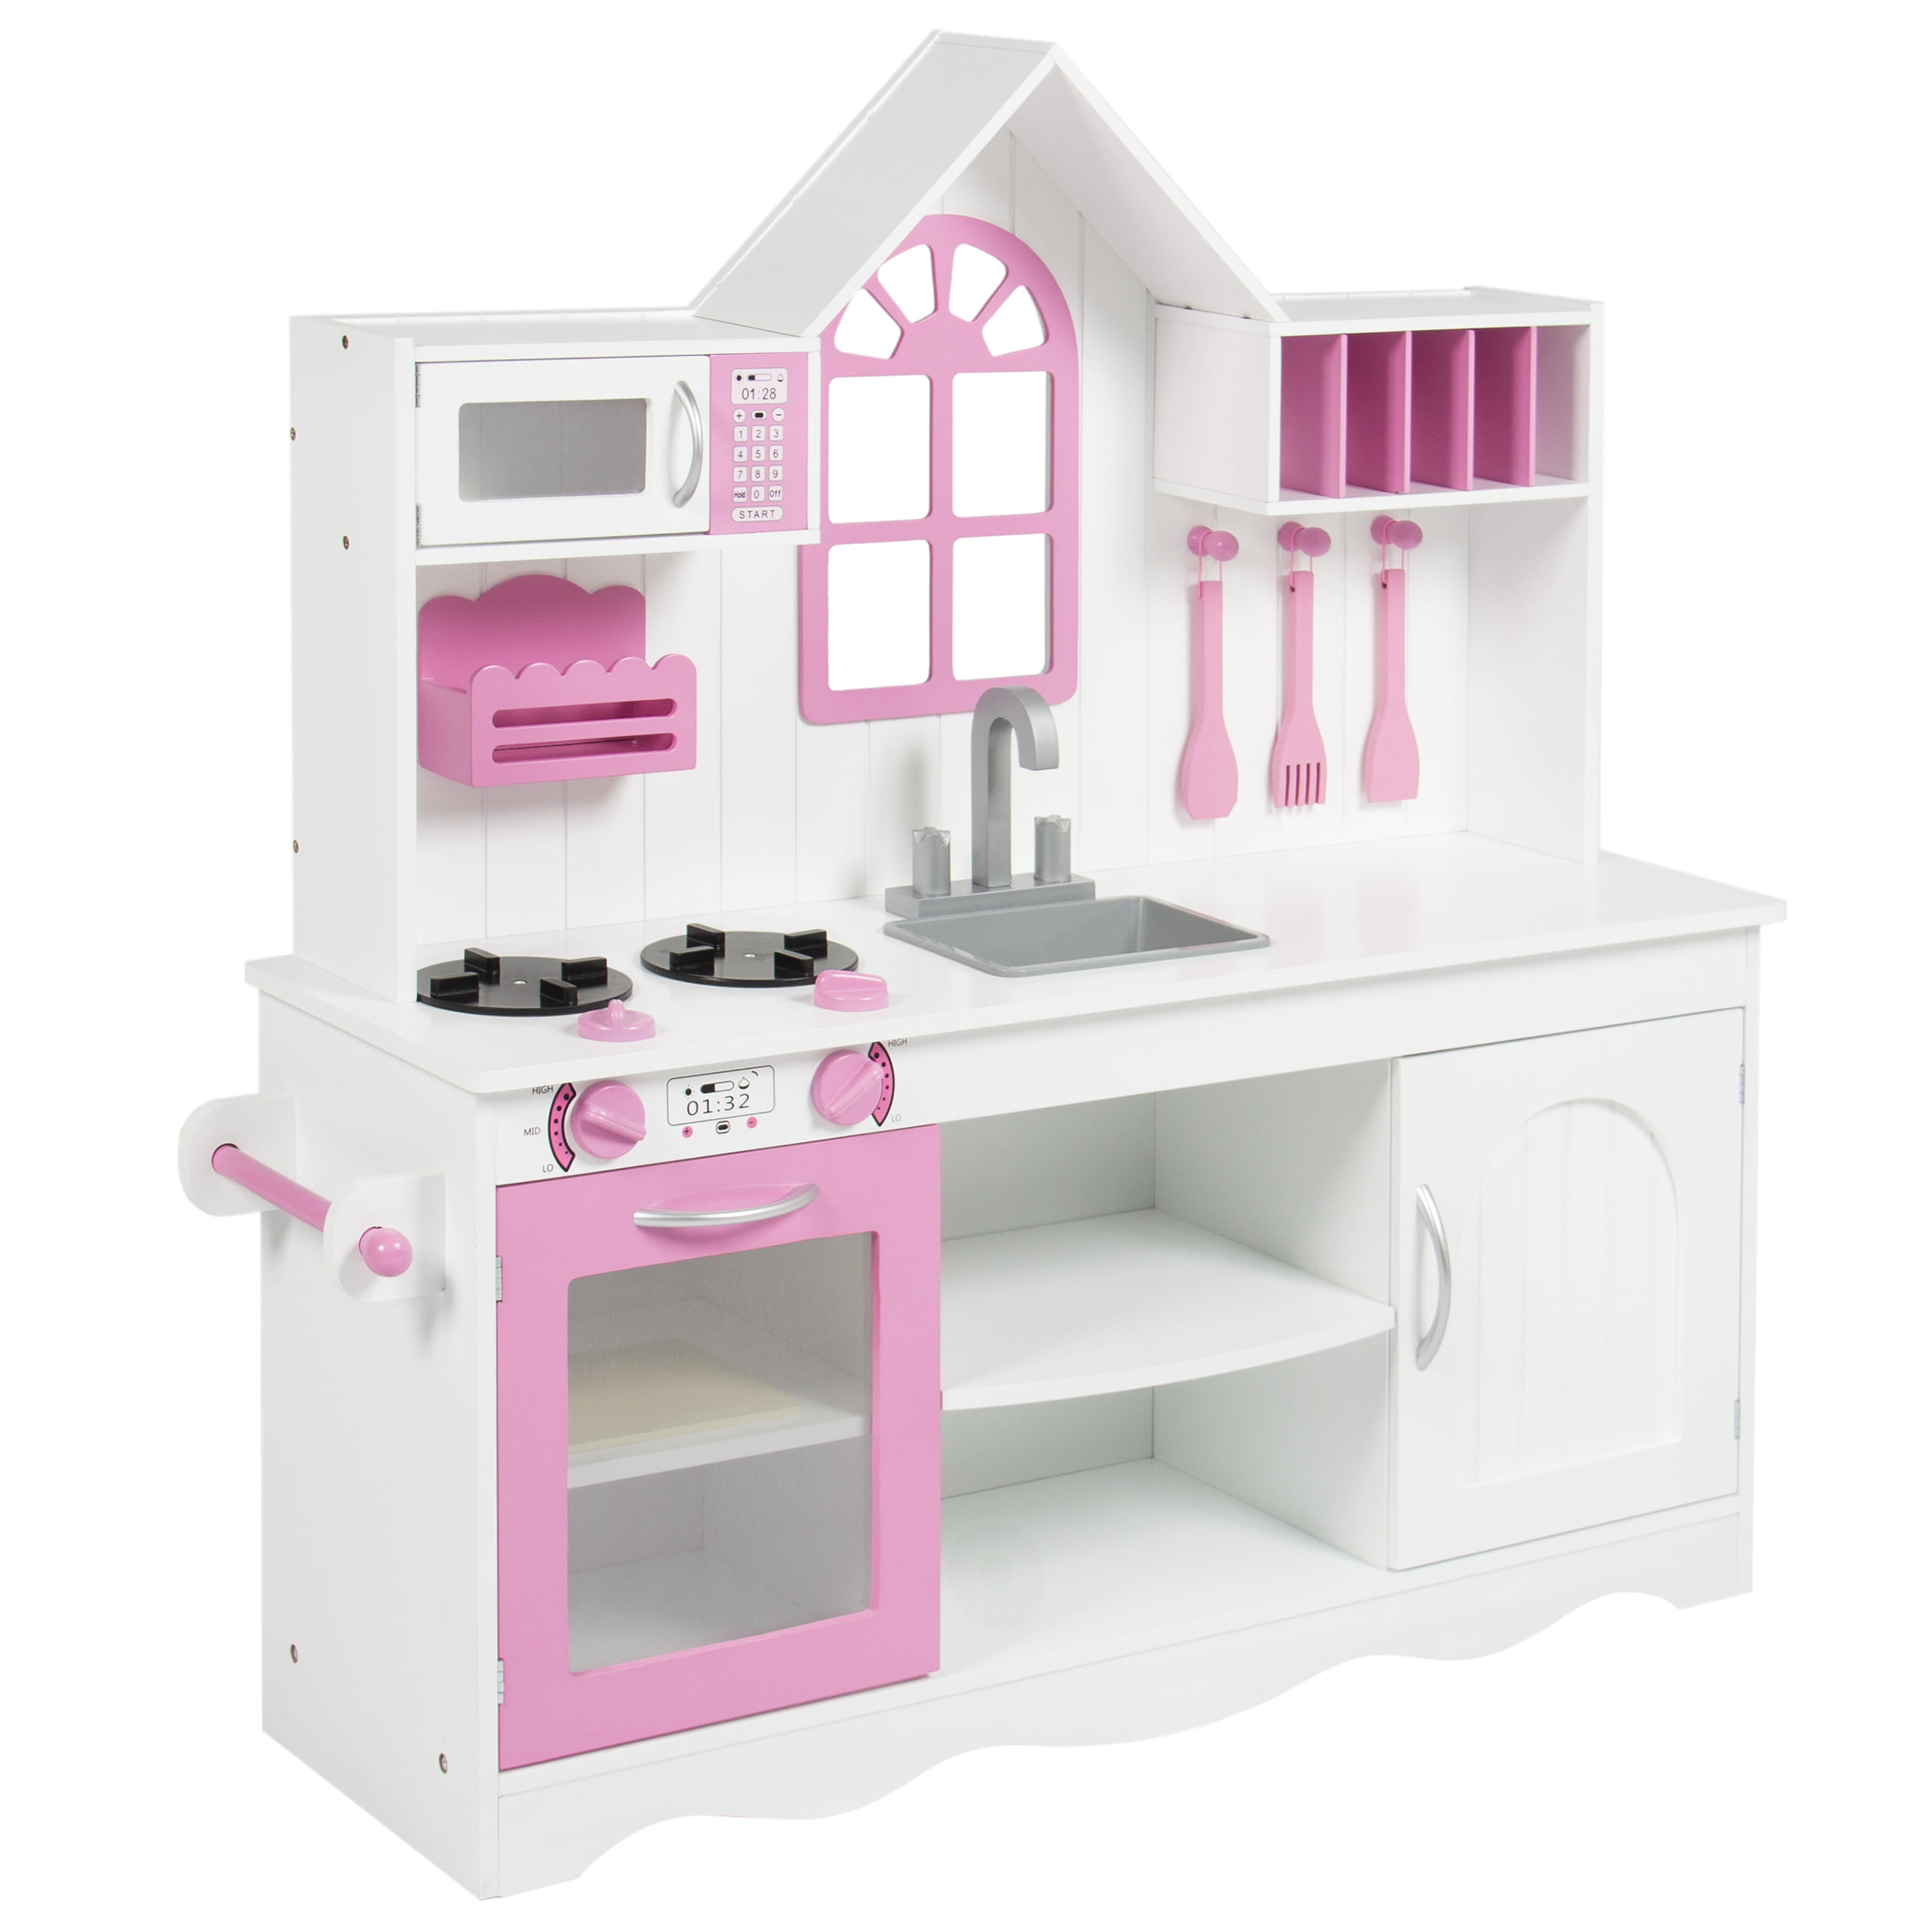 BCP Kids Wood Kitchen Toy Toddler Pretend Play Set Solid Wood Construction    White   Walmart.com